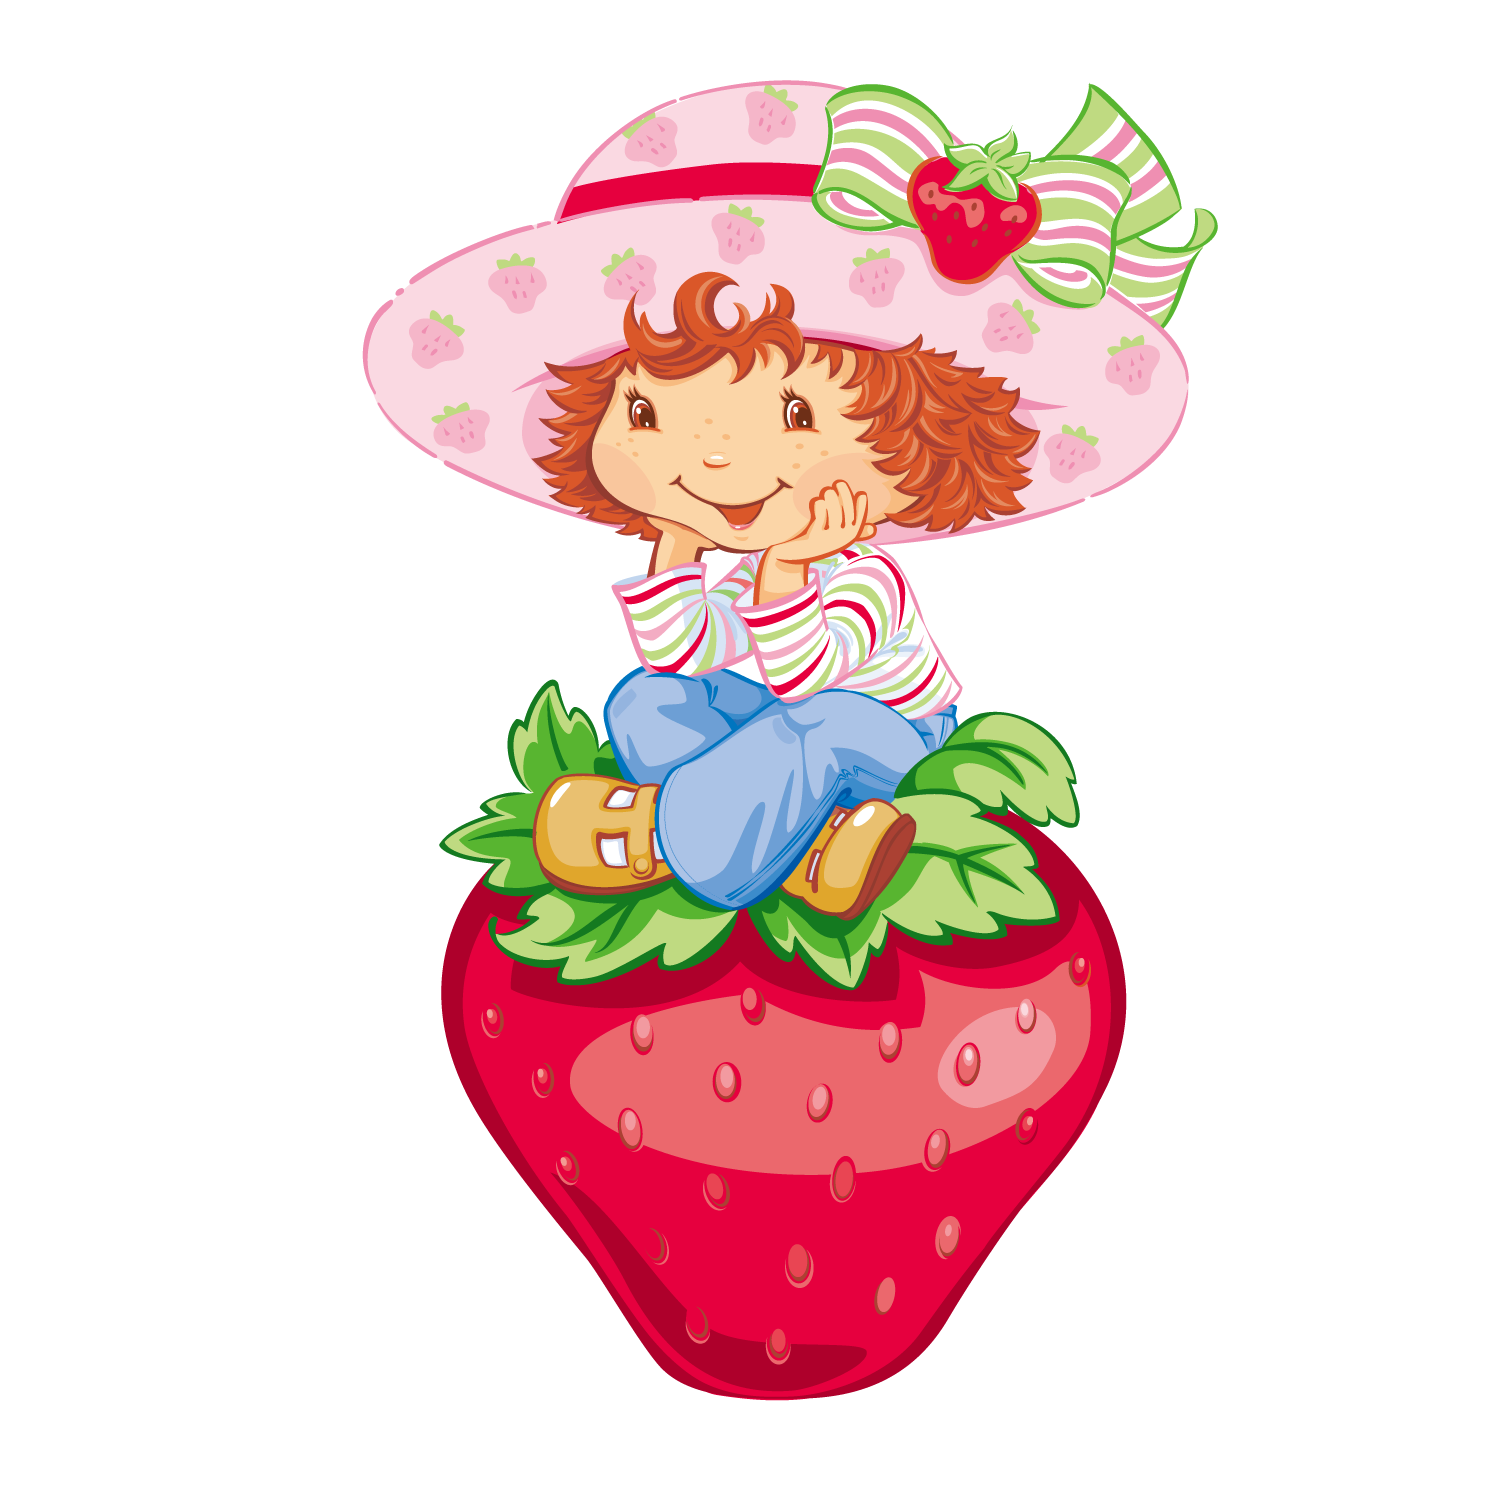 transparent library shortcake tart cheesecake strawberries clipart strawberry girl [ 1500 x 1501 Pixel ]